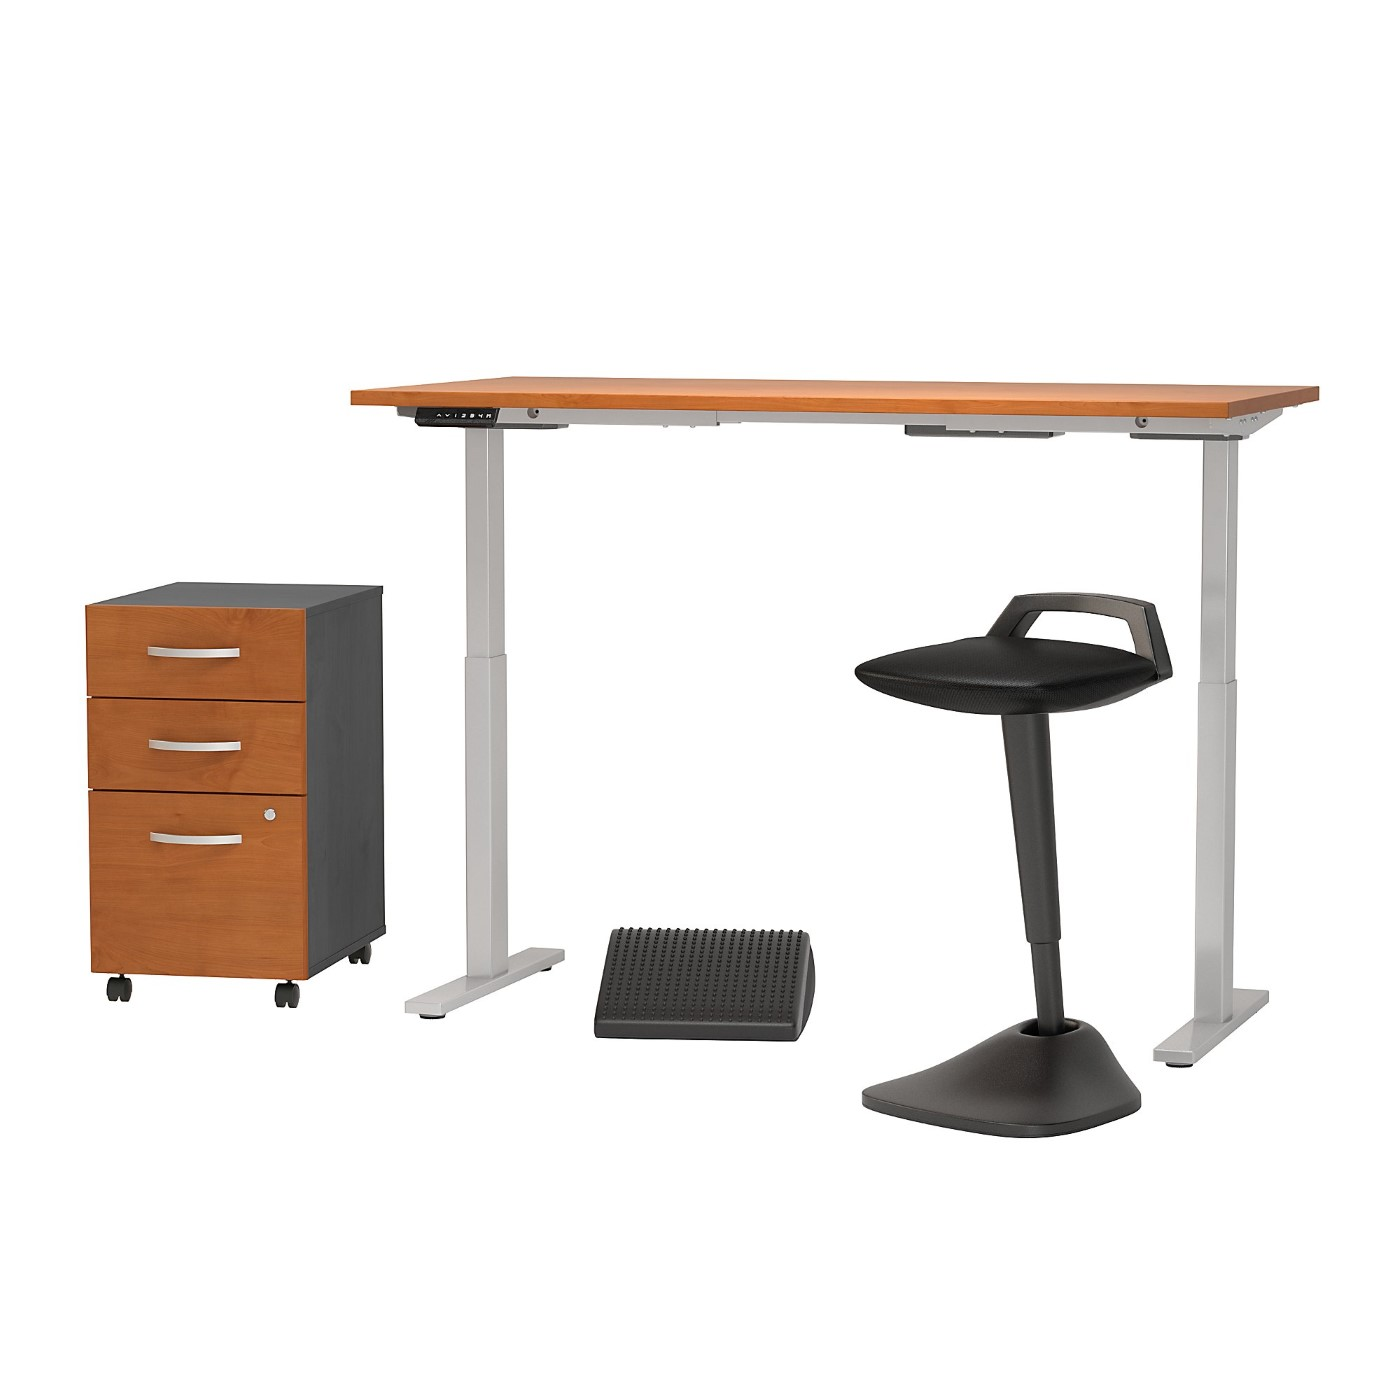 MOVE 60 SERIES BY BUSH BUSINESS FURNITURE 60W X 30D ADJUSTABLE STANDING DESK WITH LEAN STOOL, STORAGE AND ERGONOMIC ACCESSORIES. FREE SHIPPING